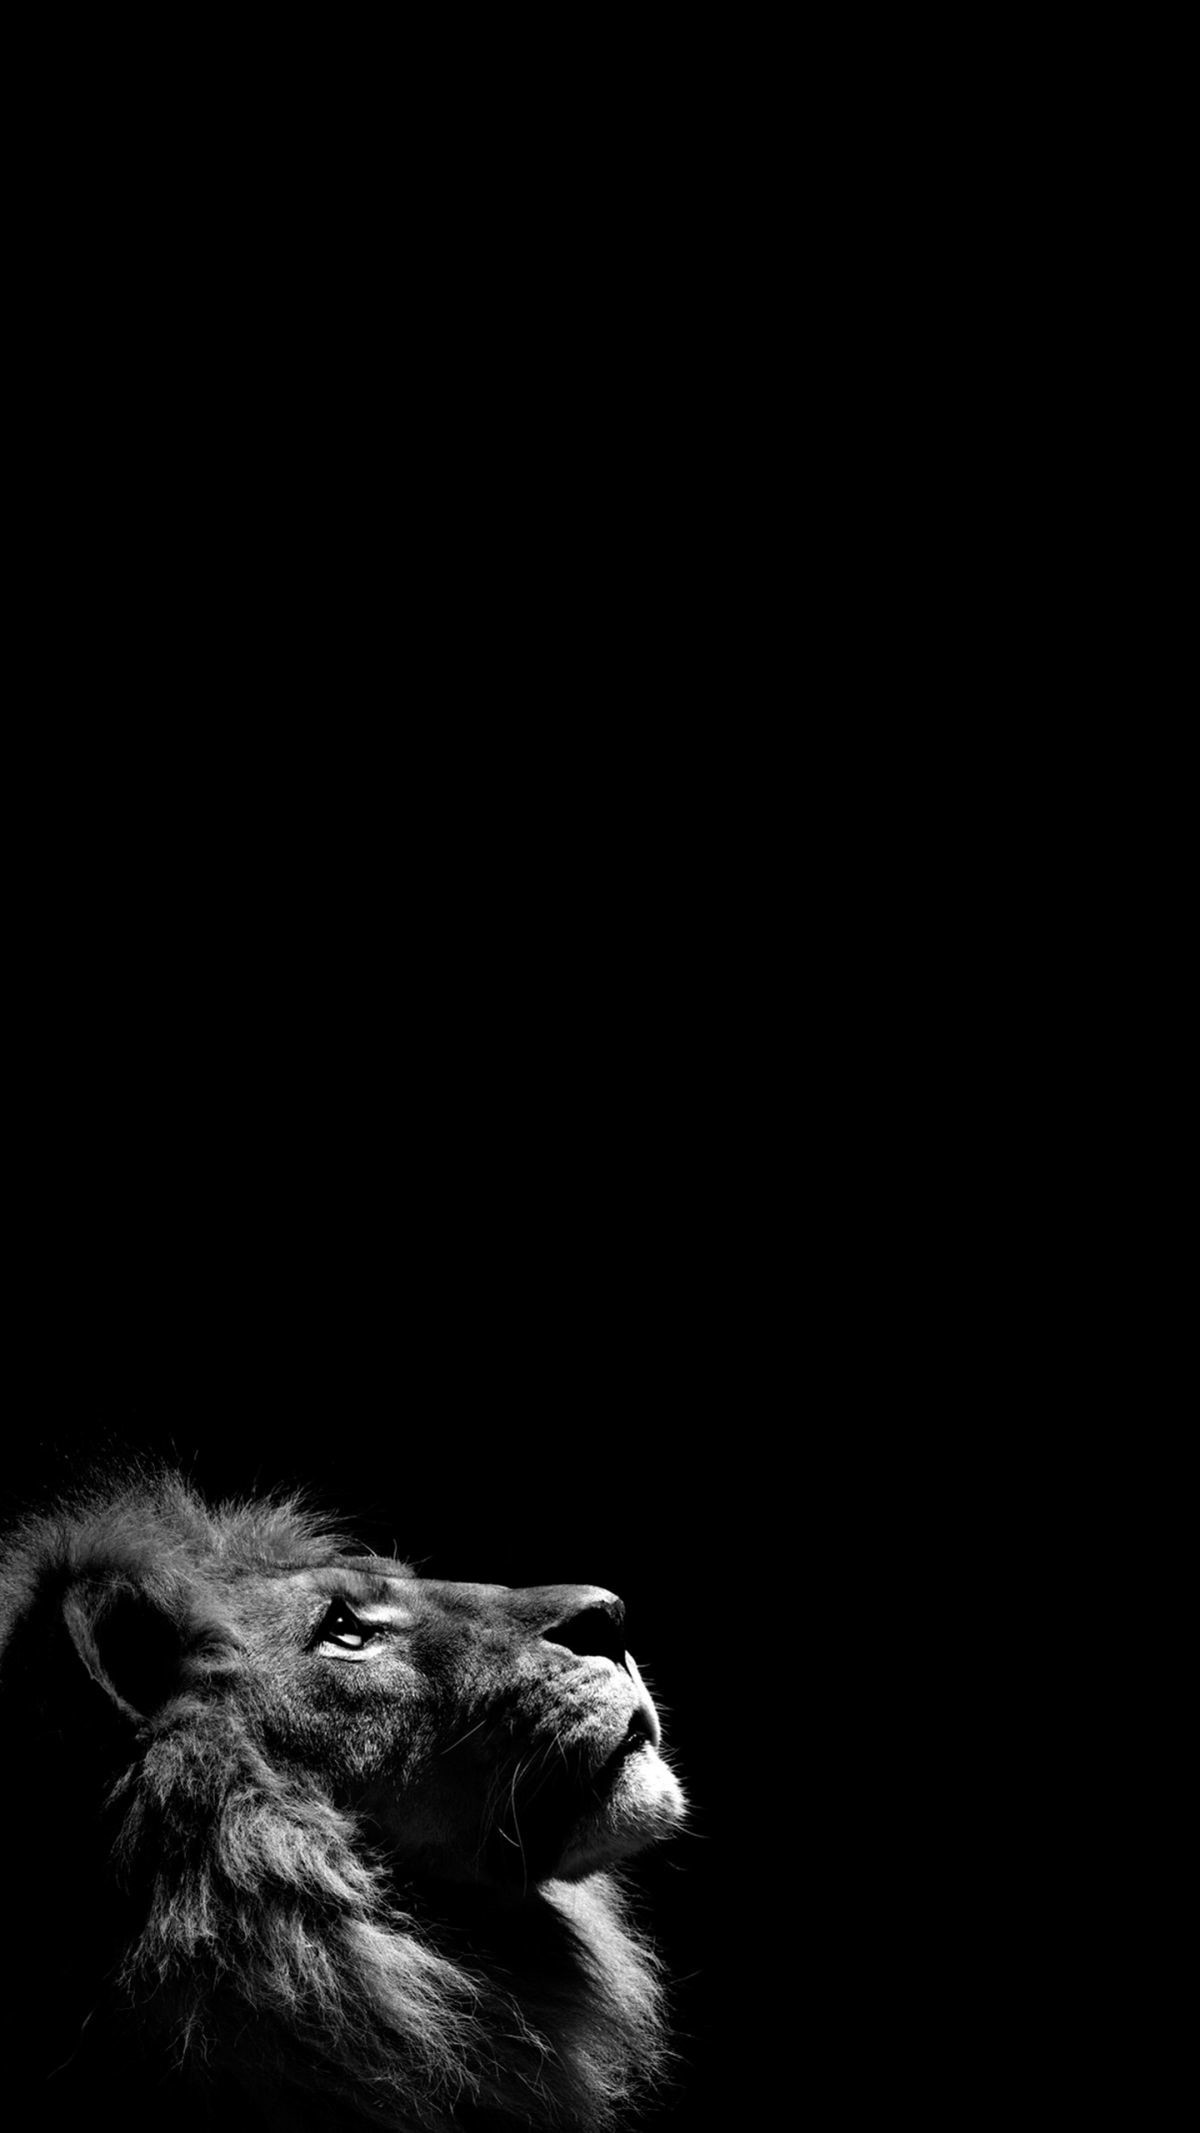 Woman Dog Street Dark Iphone 6 Wallpaper Download Black Wallpaper 4k For Android 73455 Hd Wallpaper Backgrounds Download